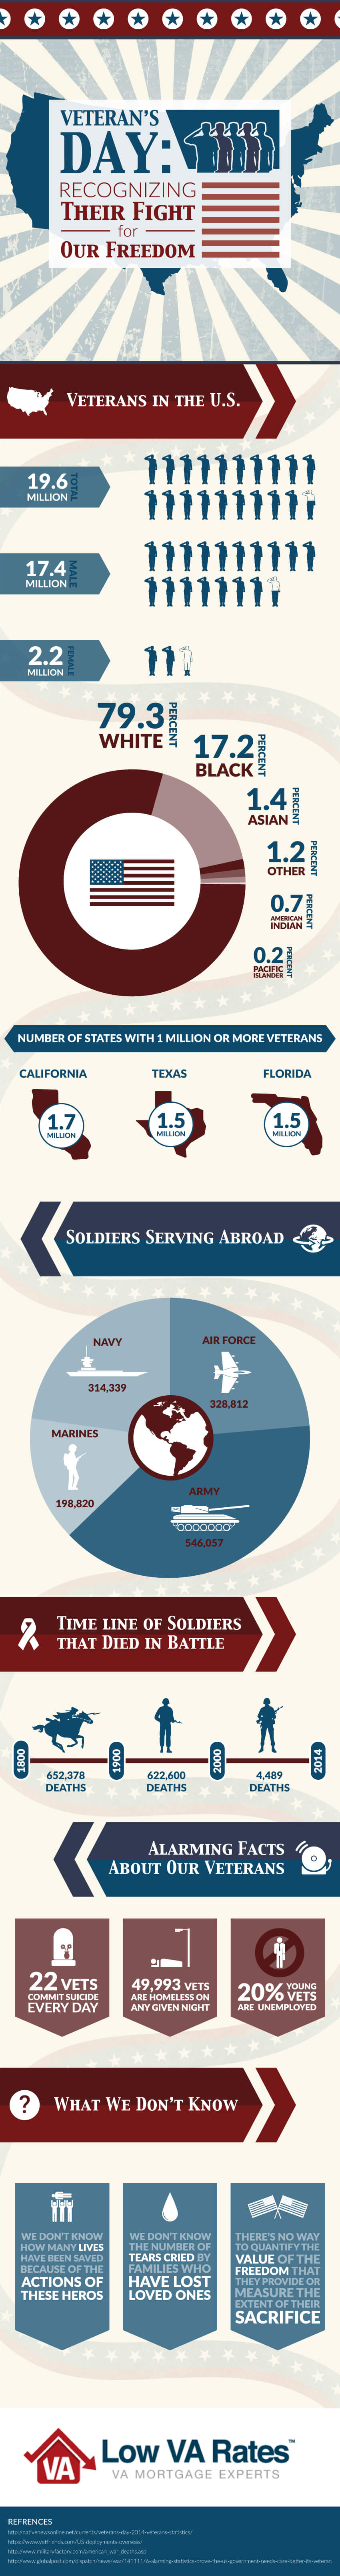 Veterans-Day-Infographic-2015